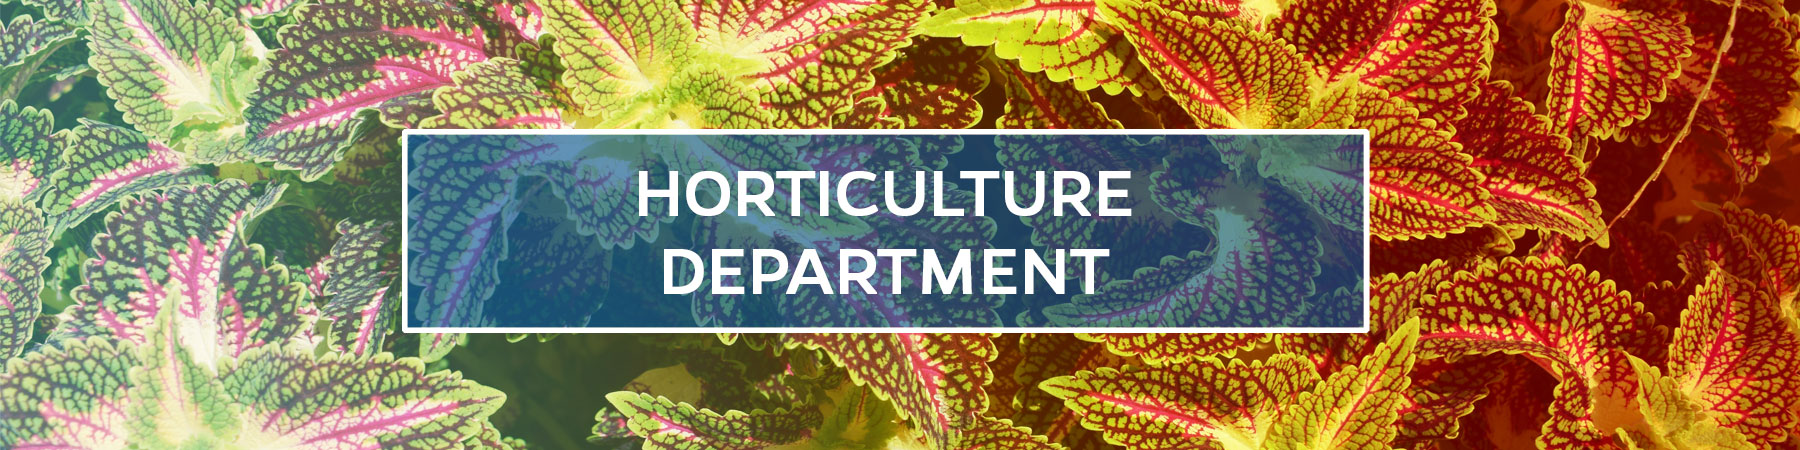 Horticulture Department